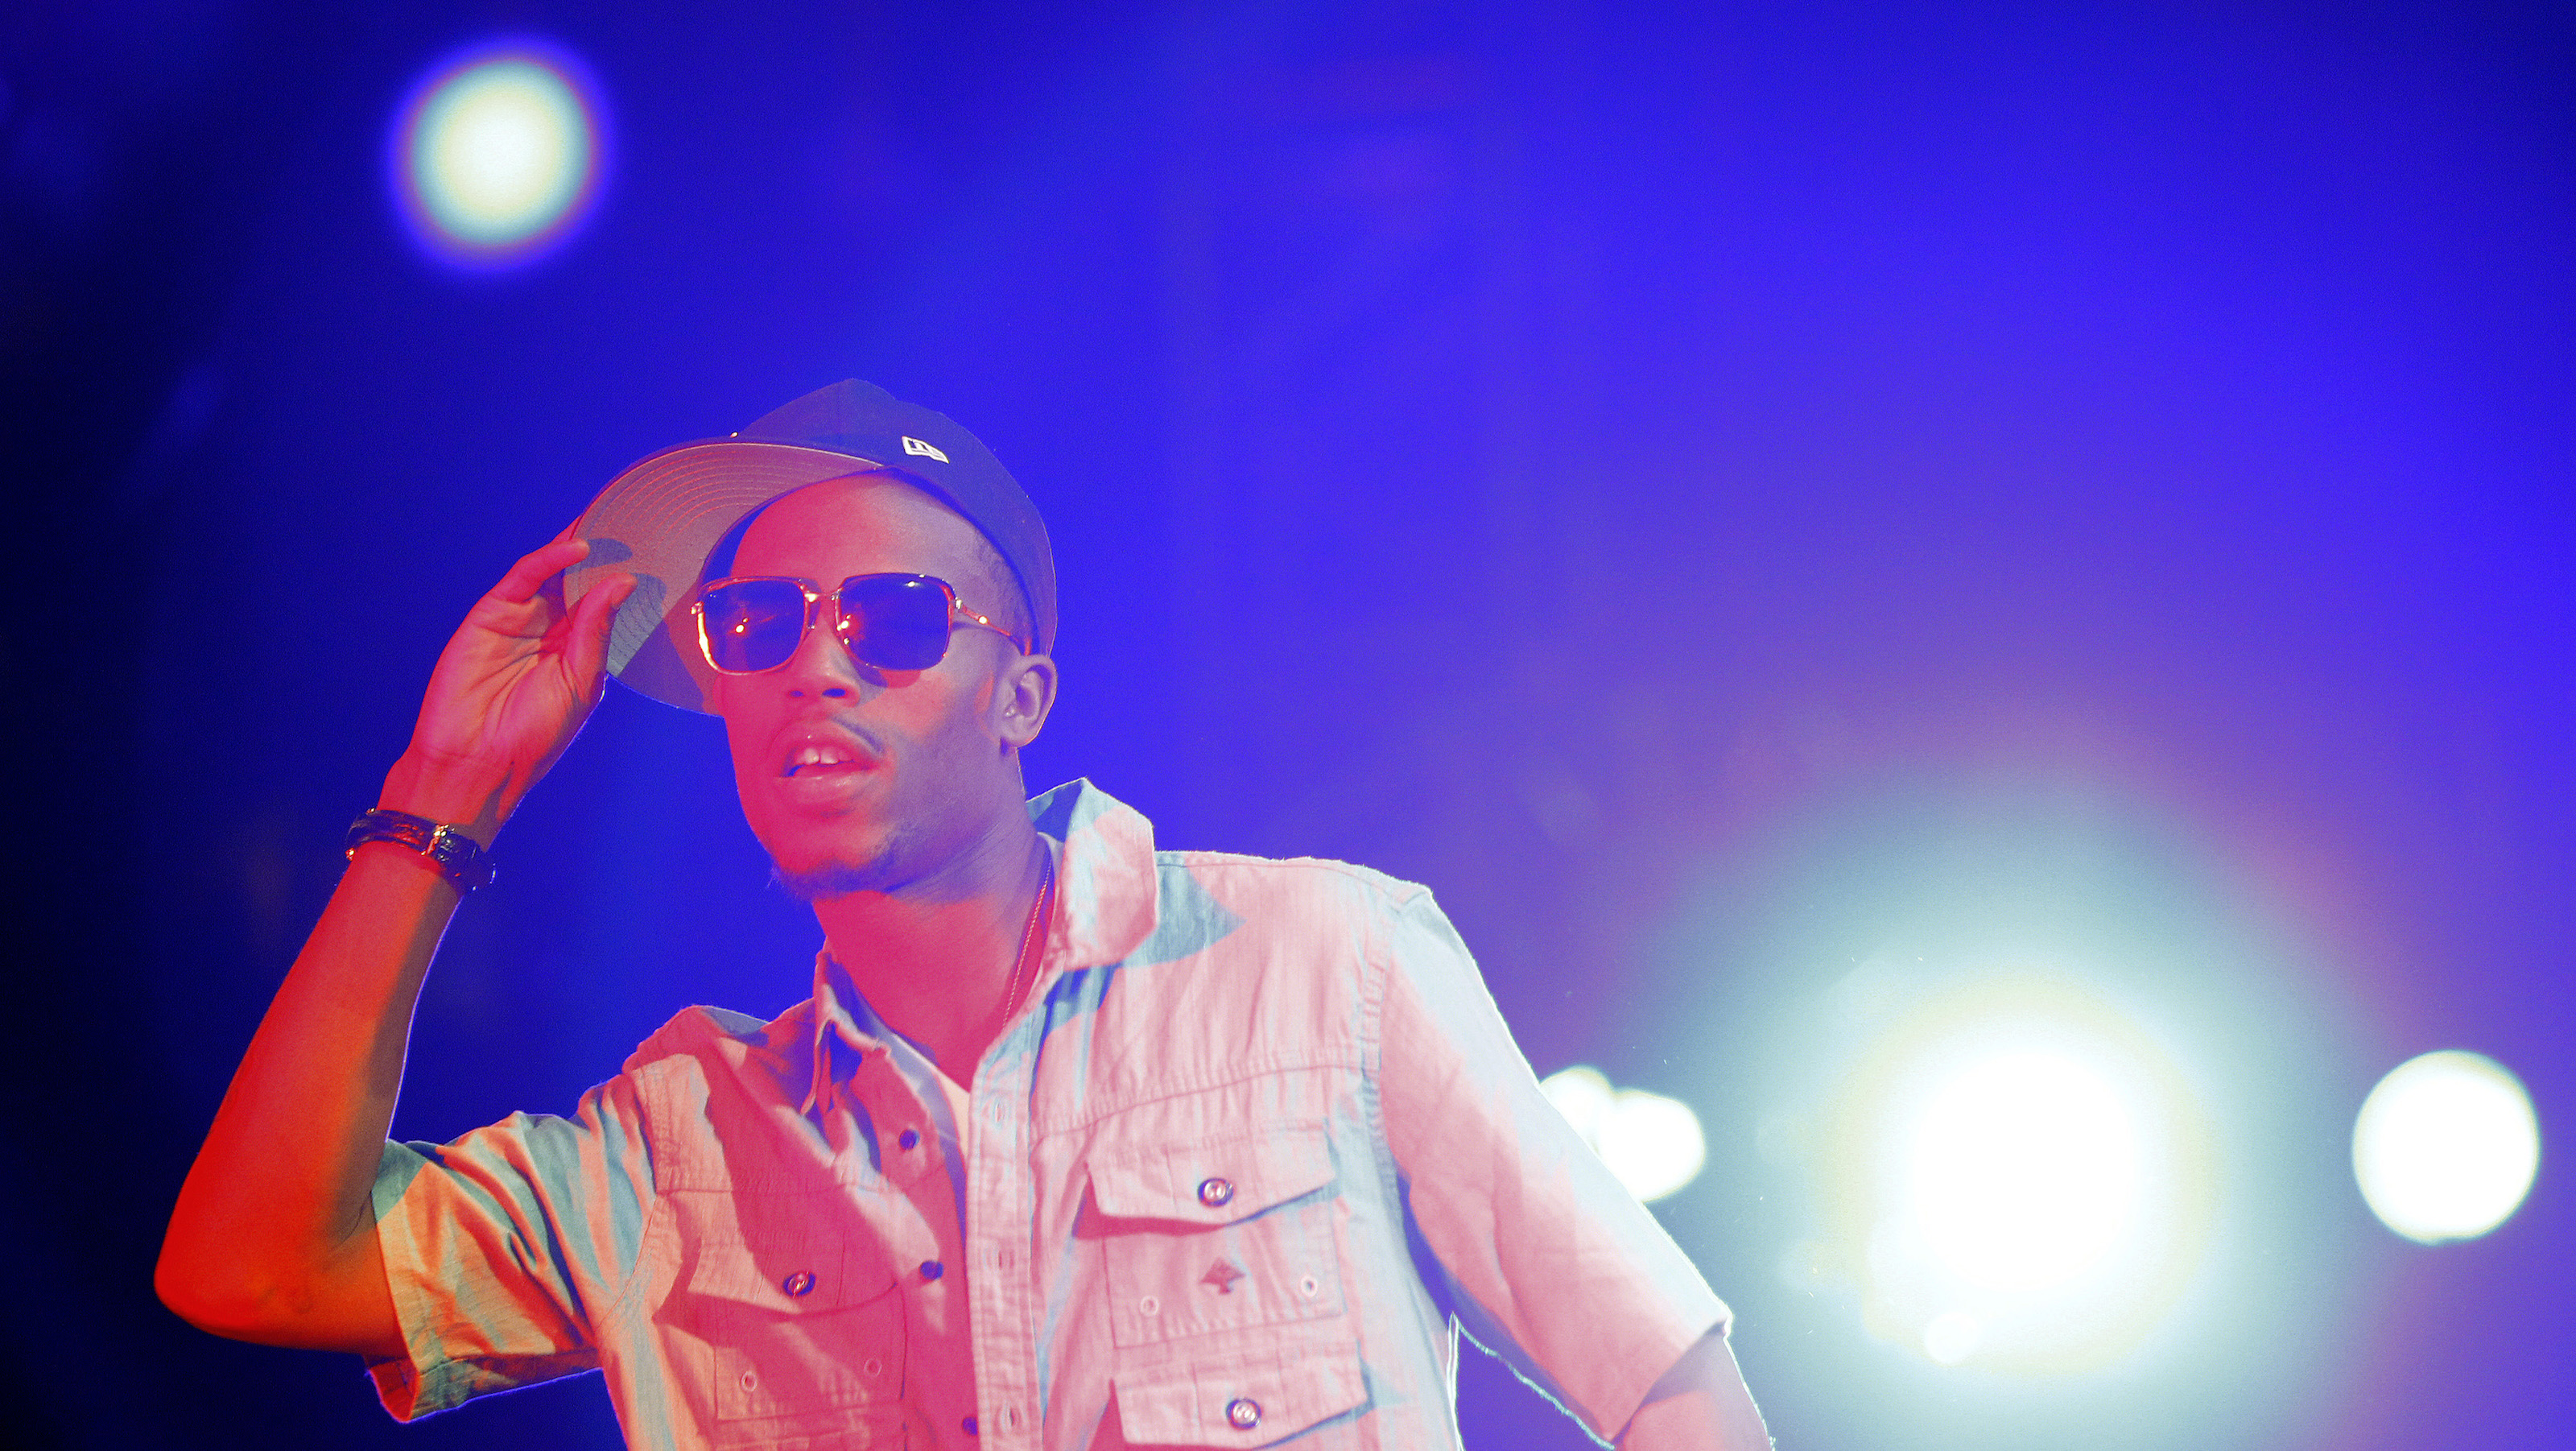 B.o.B performs at the 2010 Wango Tango concert in Los Angeles May 15, 2010. REUTERS/Mario Anzuoni  (UNITED STATES - Tags: ENTERTAINMENT) - GM1E65G0TY601